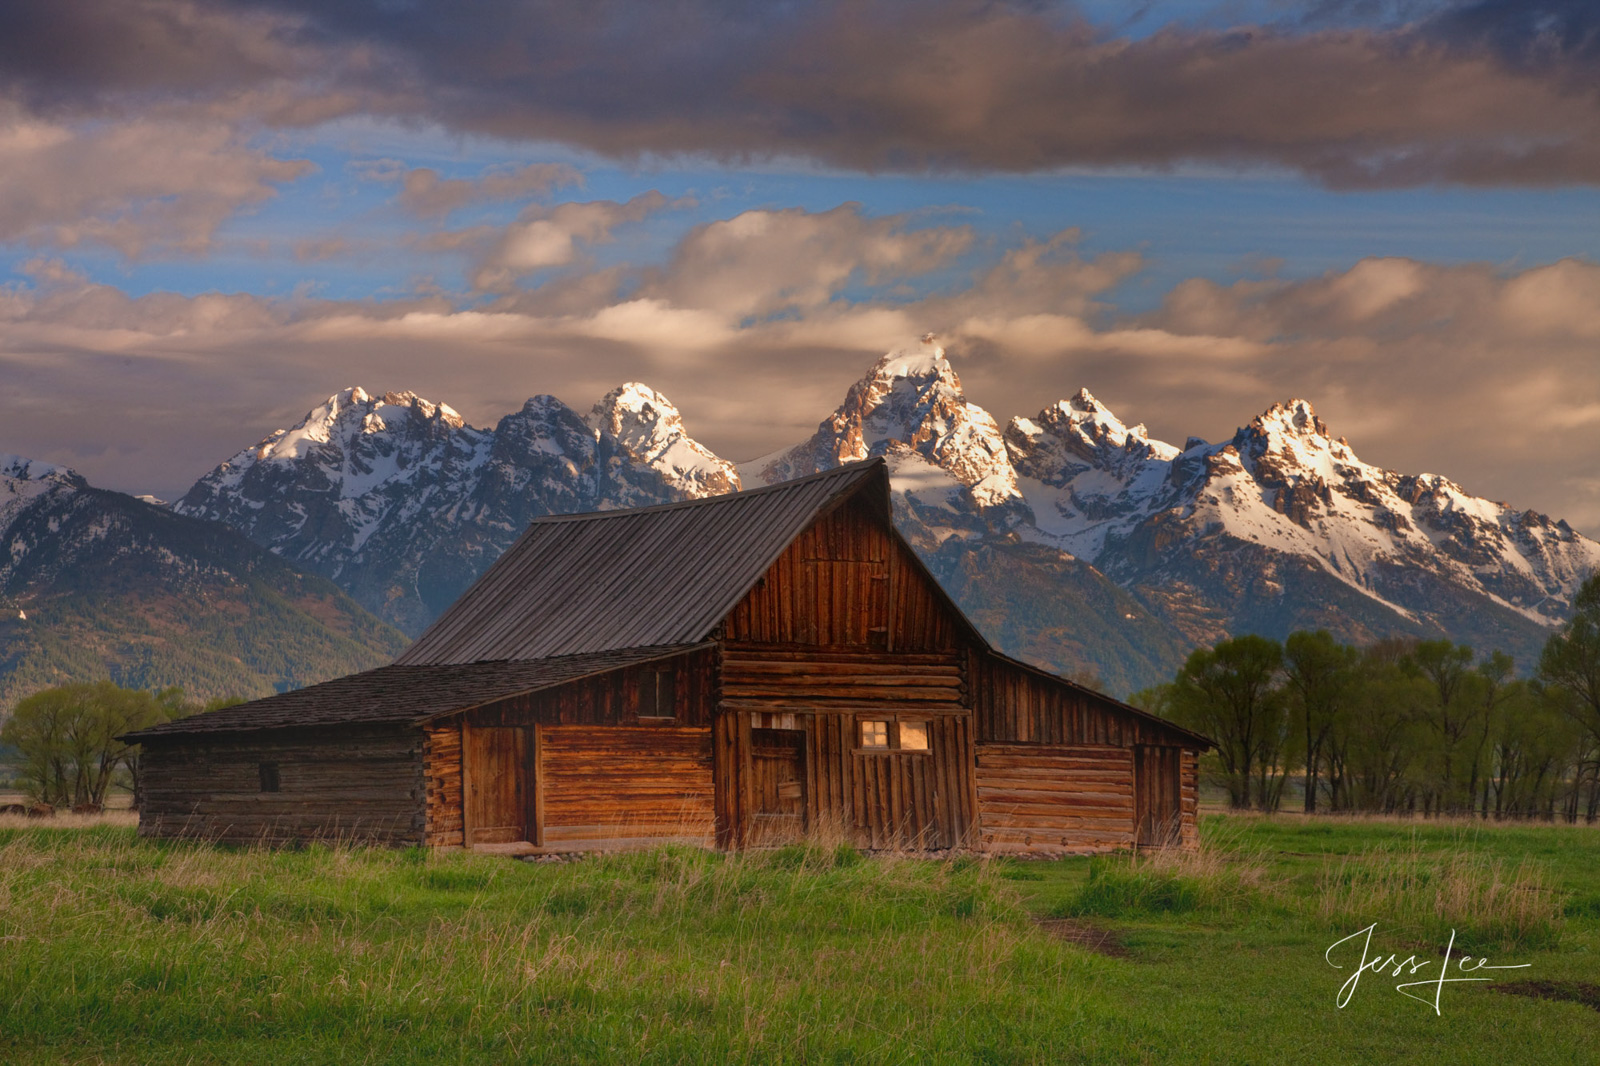 mountains, grand teton, barn, snow, trees, cowboy, western, Large format, cowgirl, ranch, museum quality, fine art, print, jess lee, artist, photographer, limited edition, high quality, hig, photo